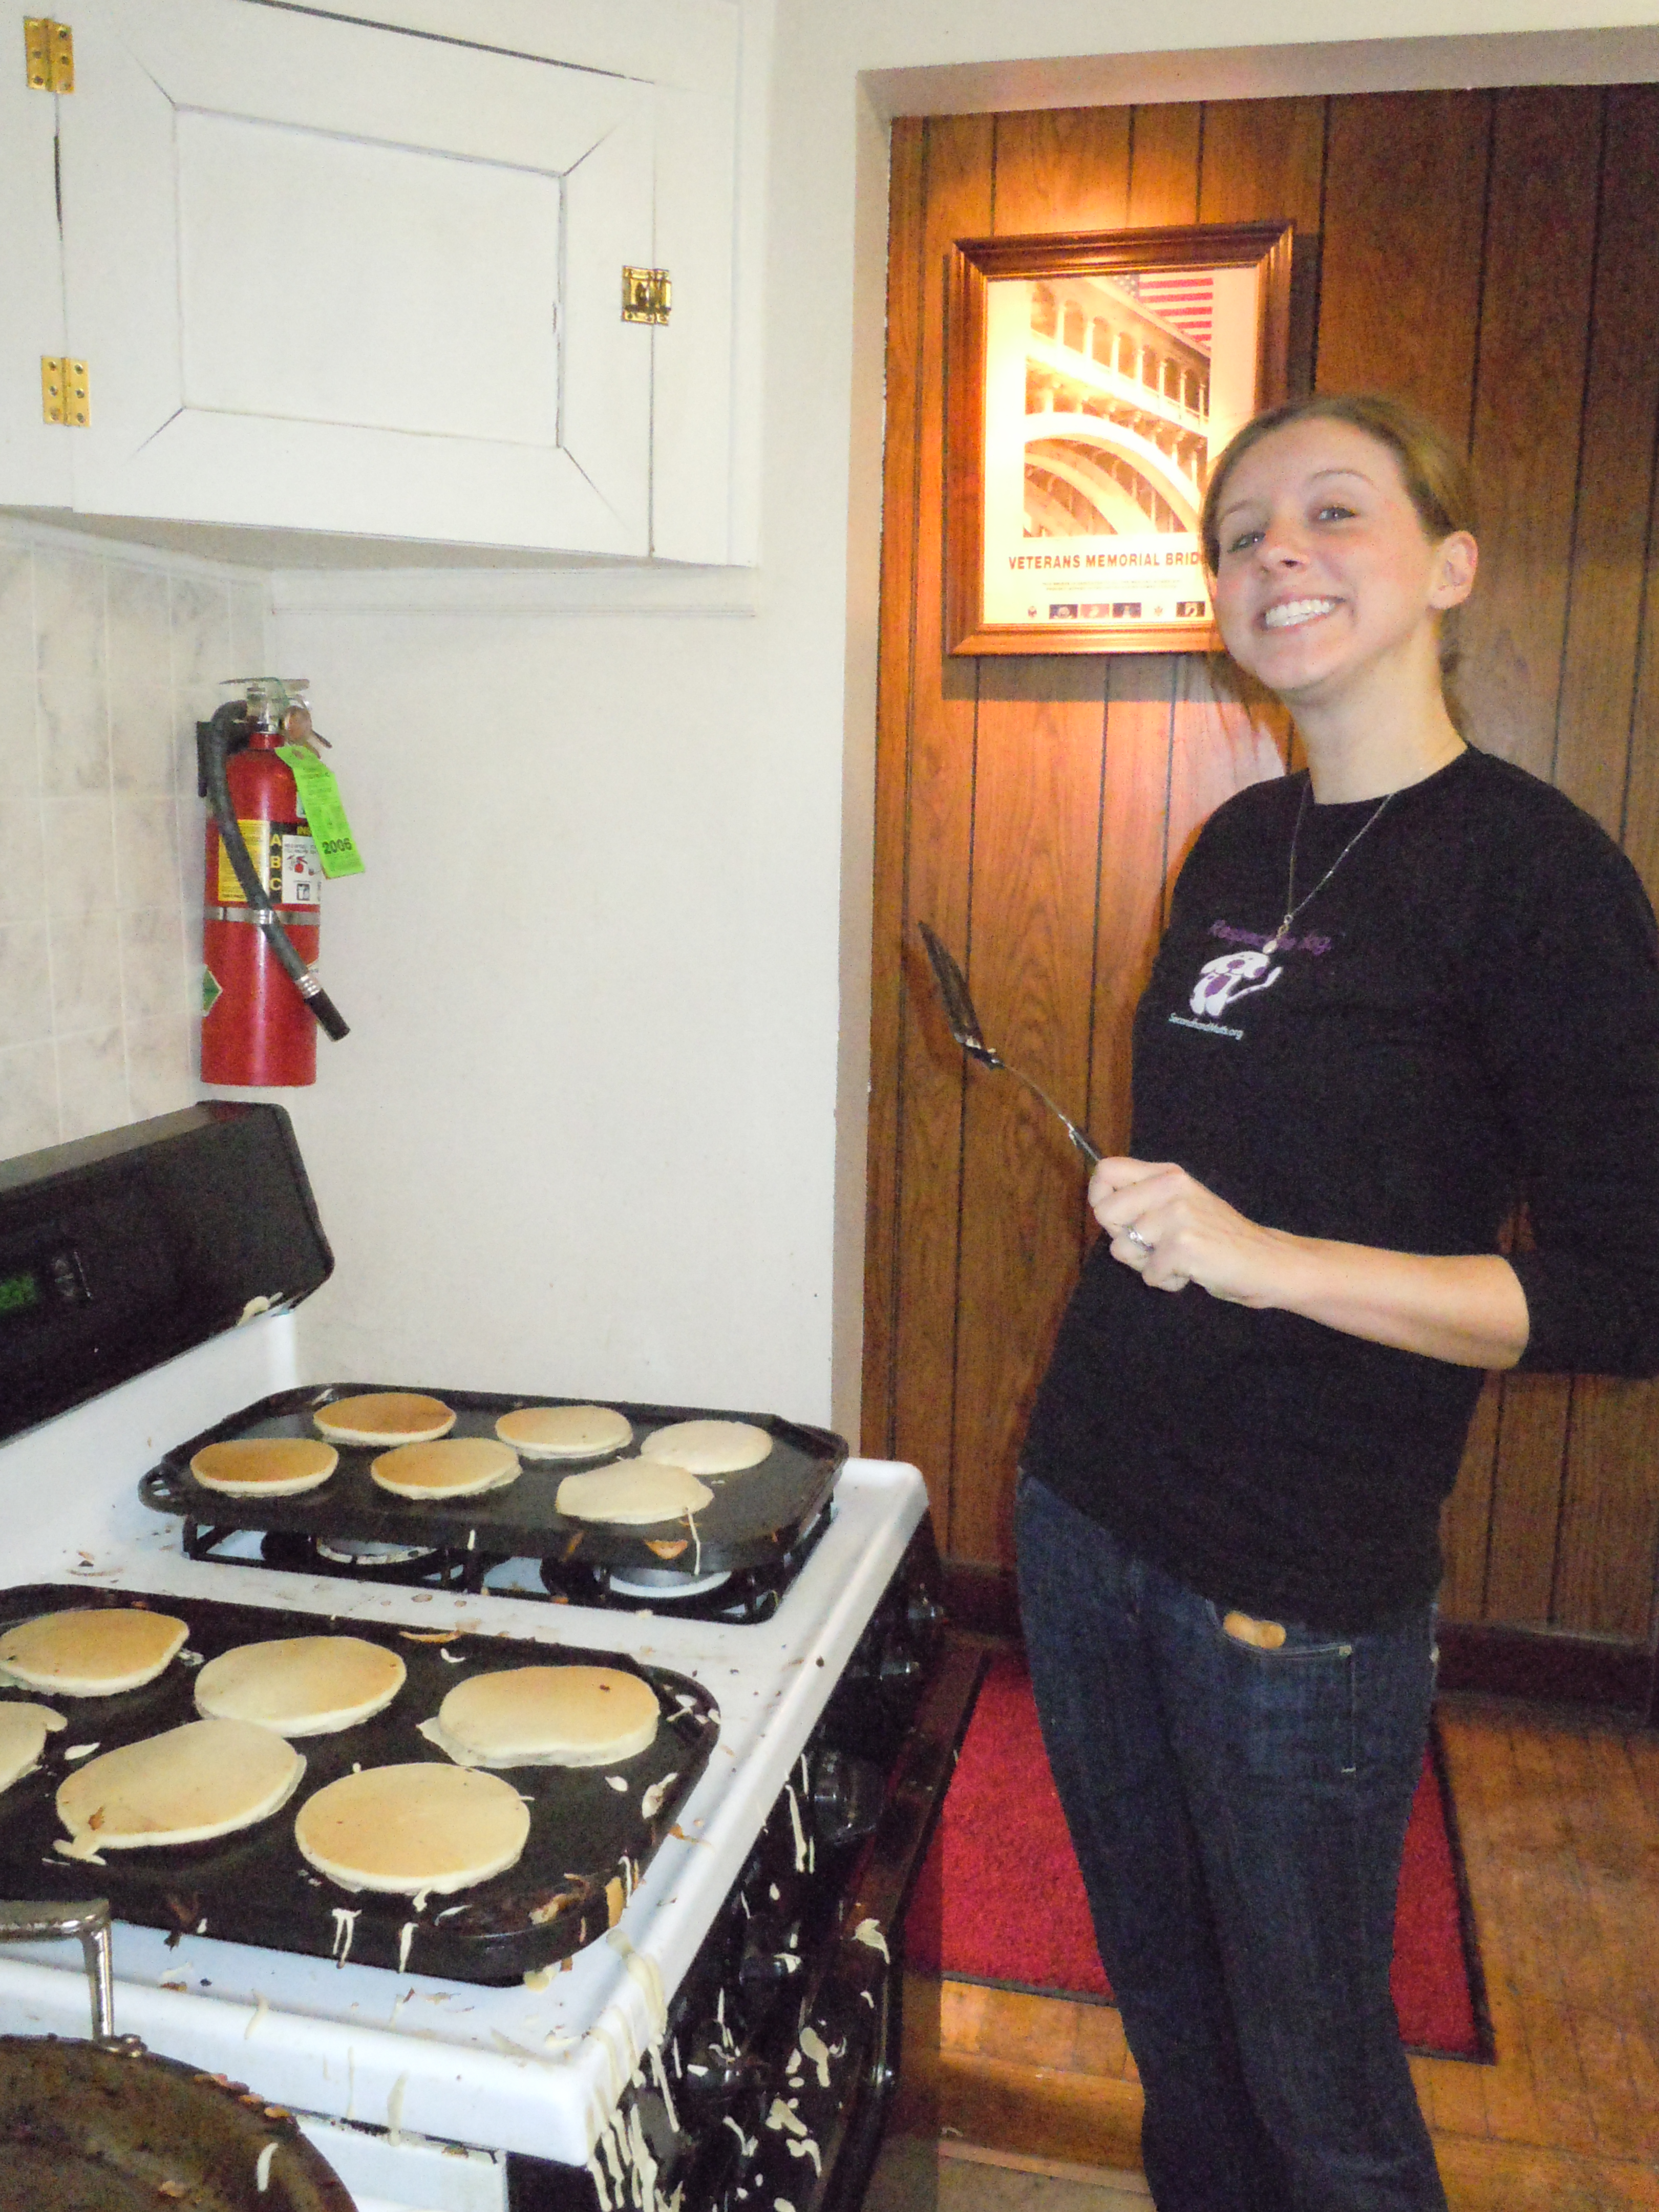 Sara volunteering as a pancake flipper at the 2011 3rd Annual Barkfeast